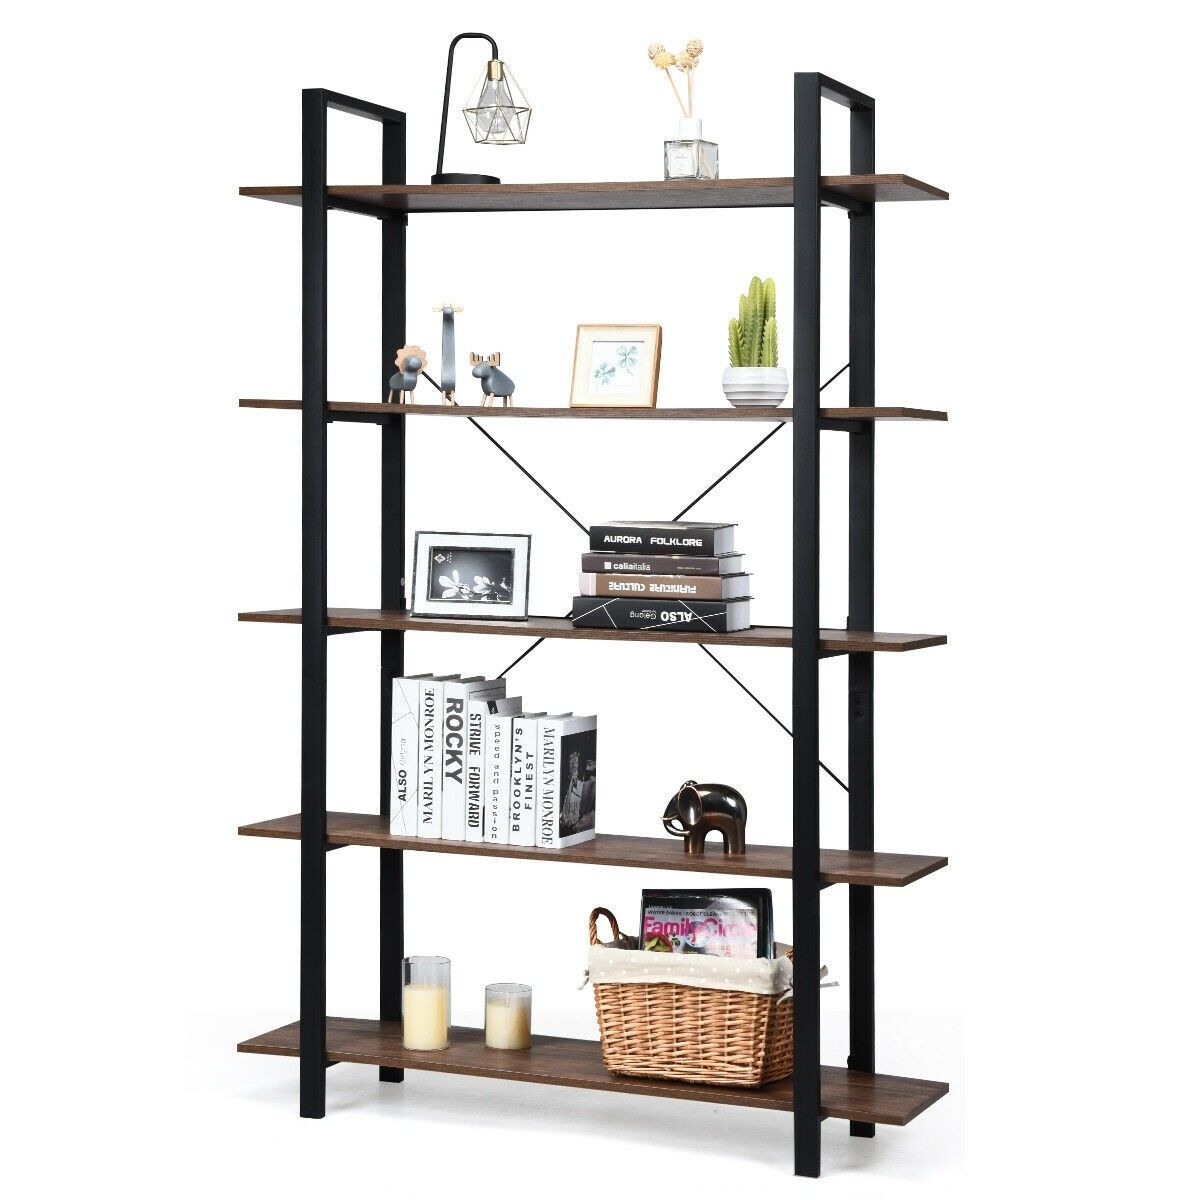 5 Tiers Bookshelf Industrial Bookcases Metal Frame Shelf Stand 129 95 Free Shipping It Is Made Of P2 Grade Pa Bookcase Frame Shelf Storage Furniture Bedroom